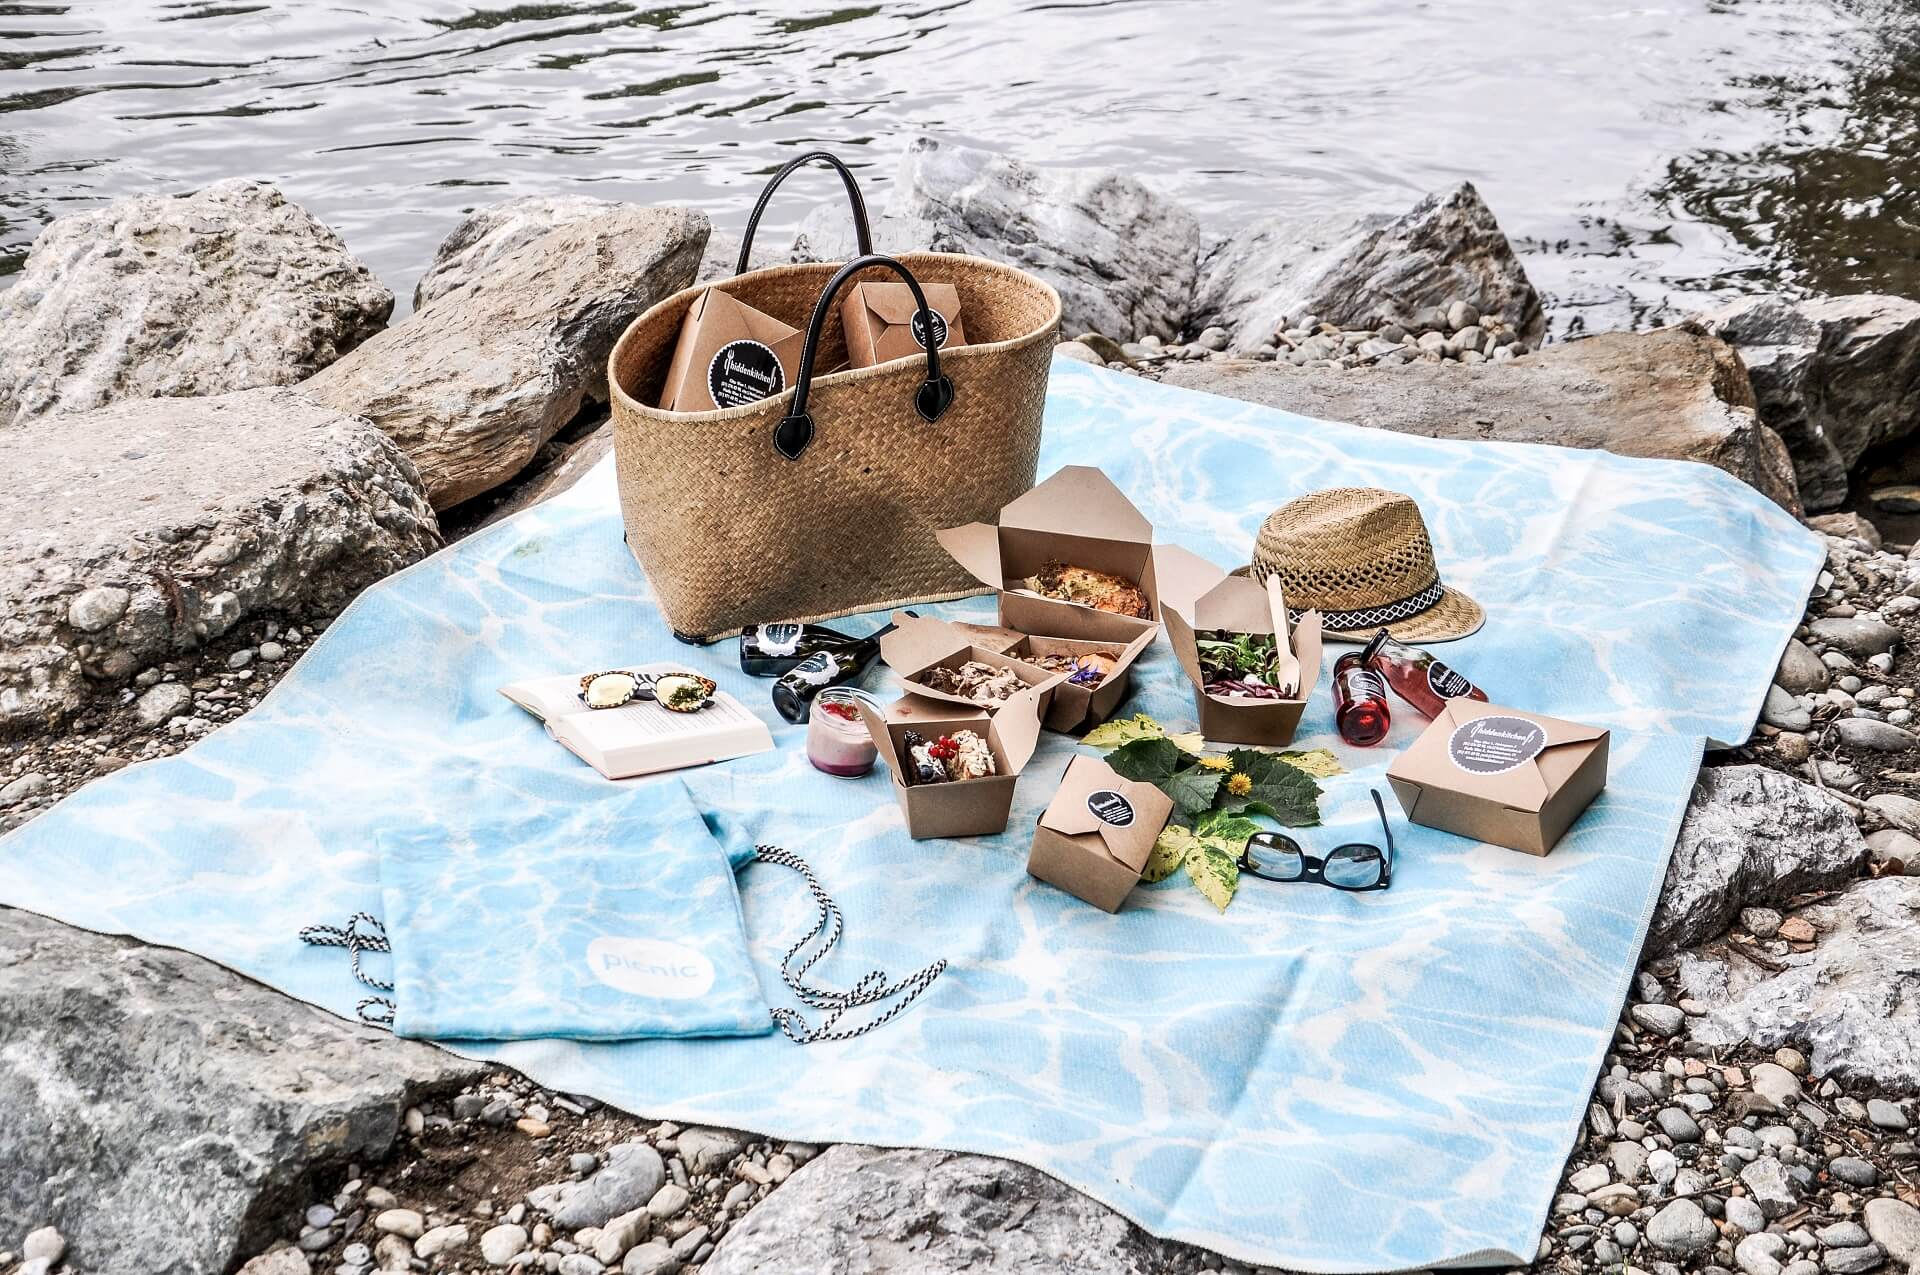 Where can I buy a fully packaged picnic basket?